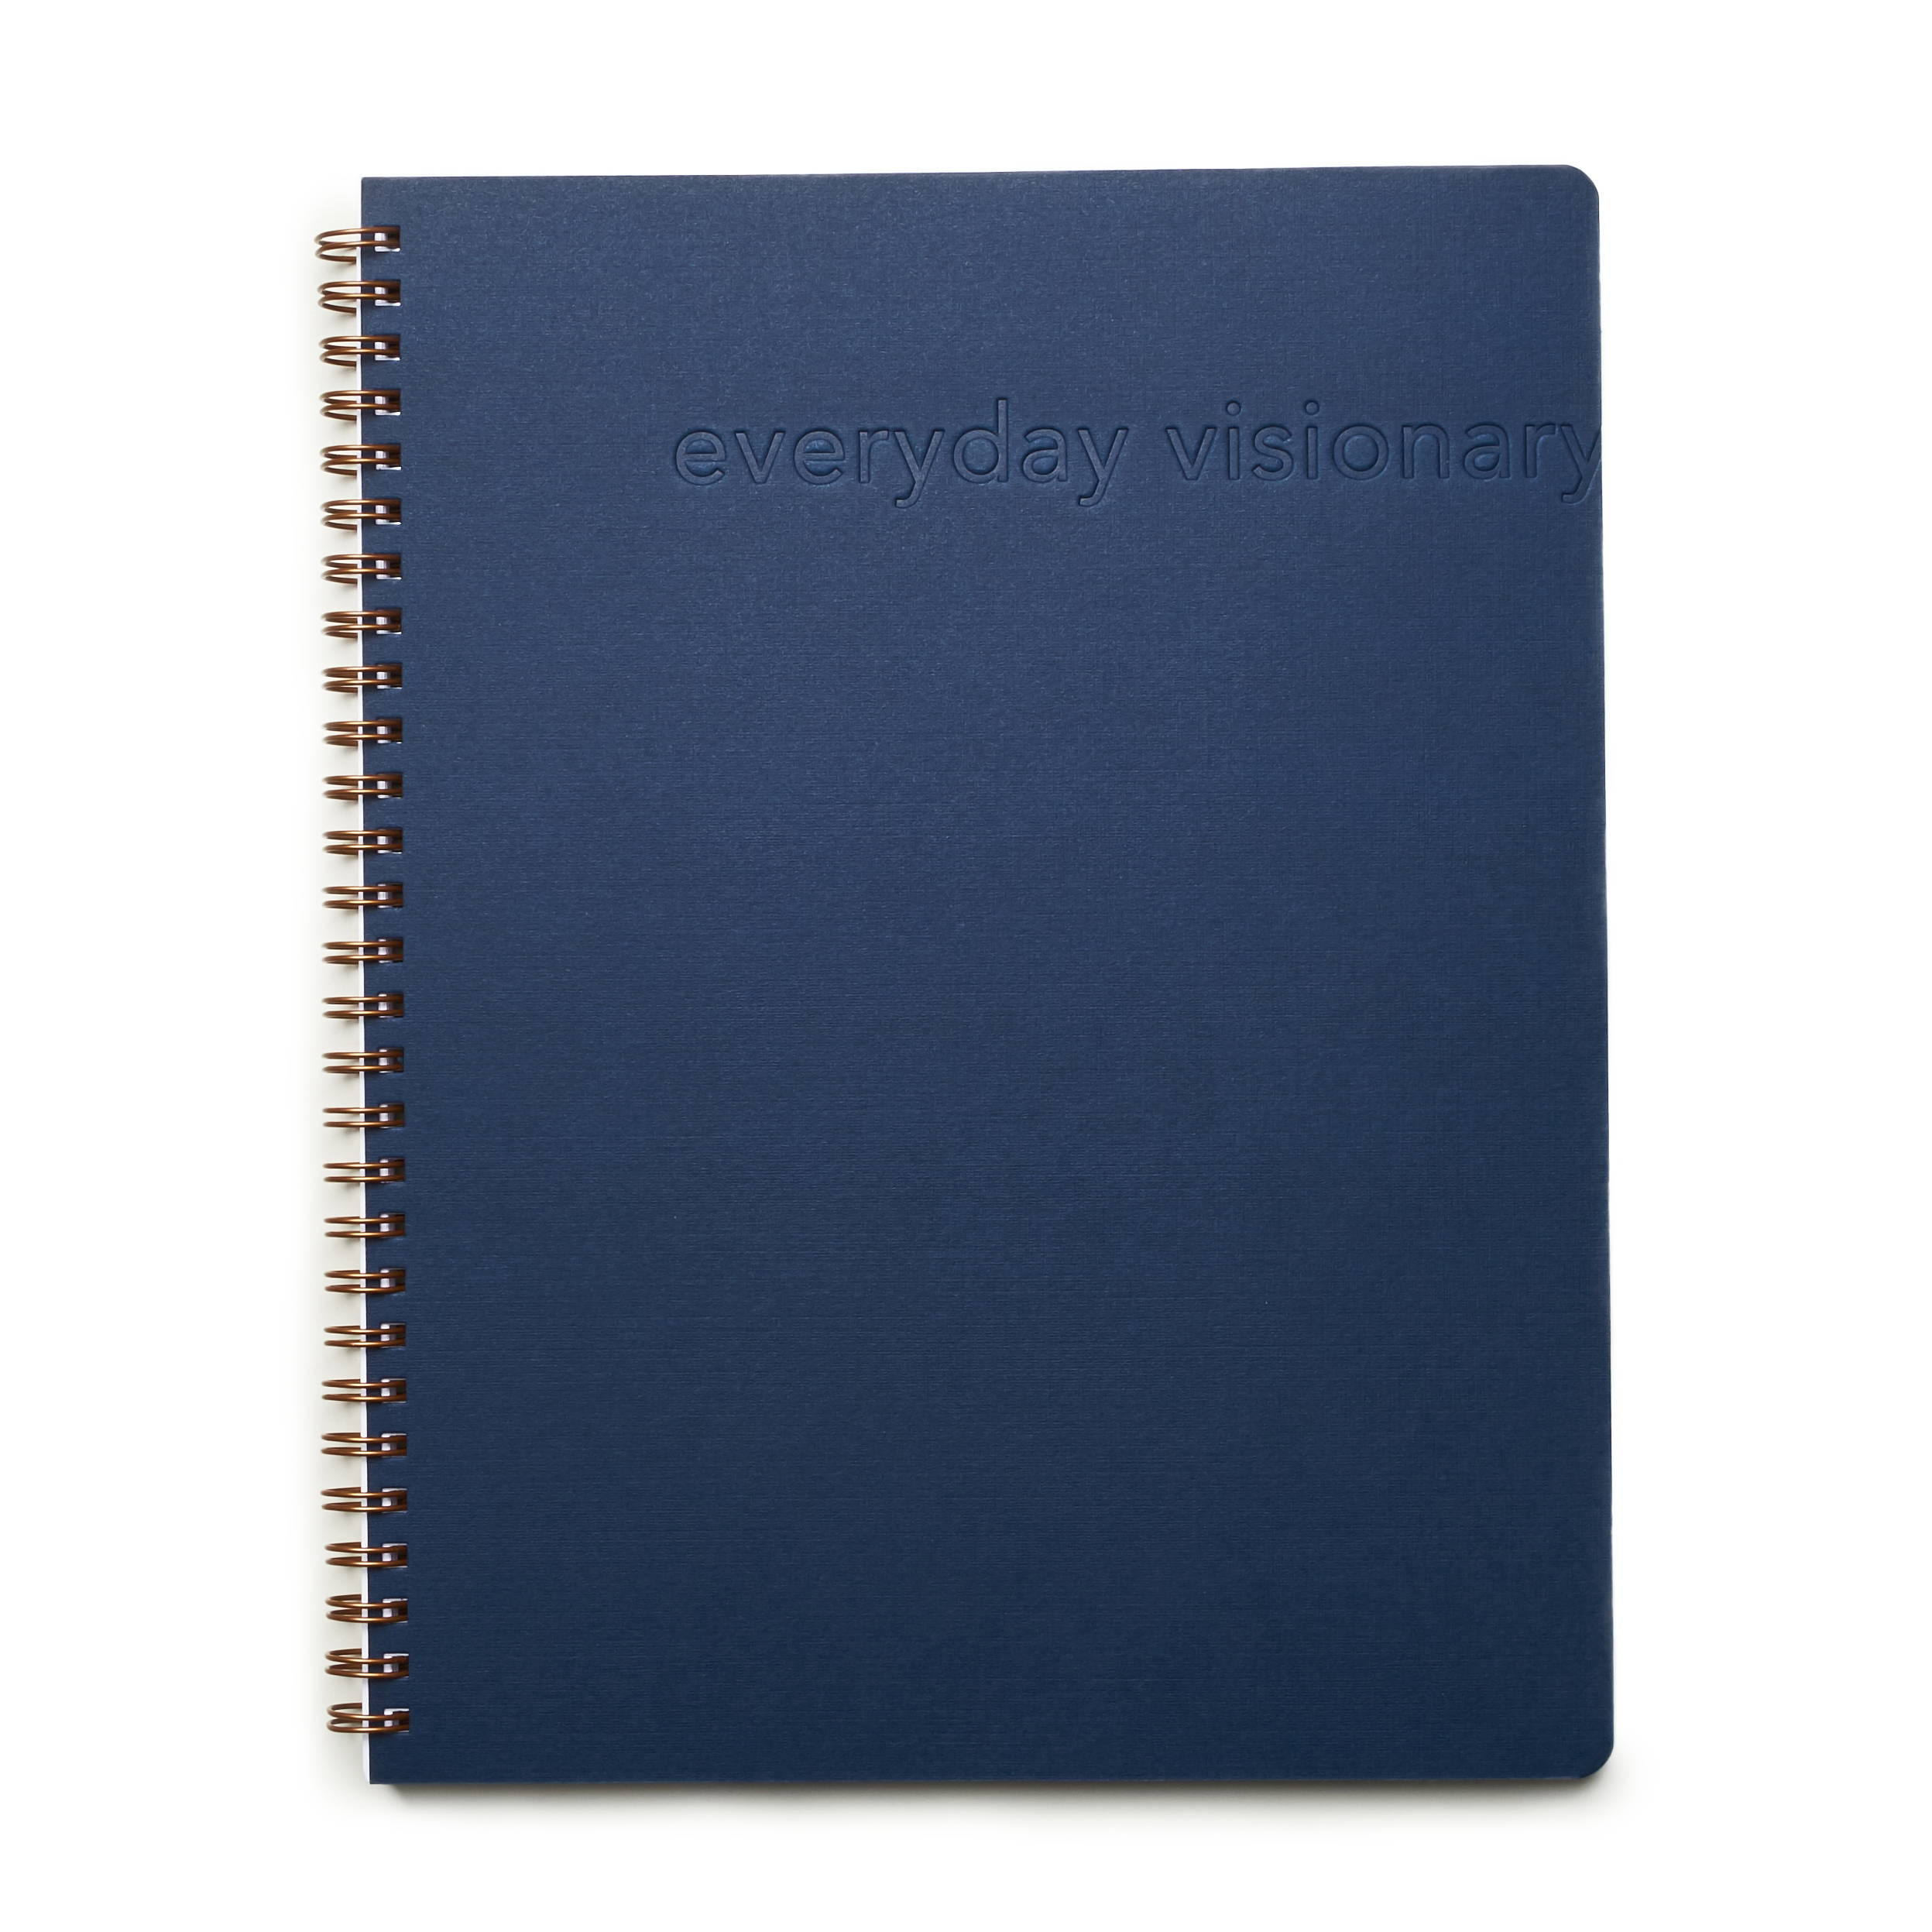 Everyday Visionary Planner Navy